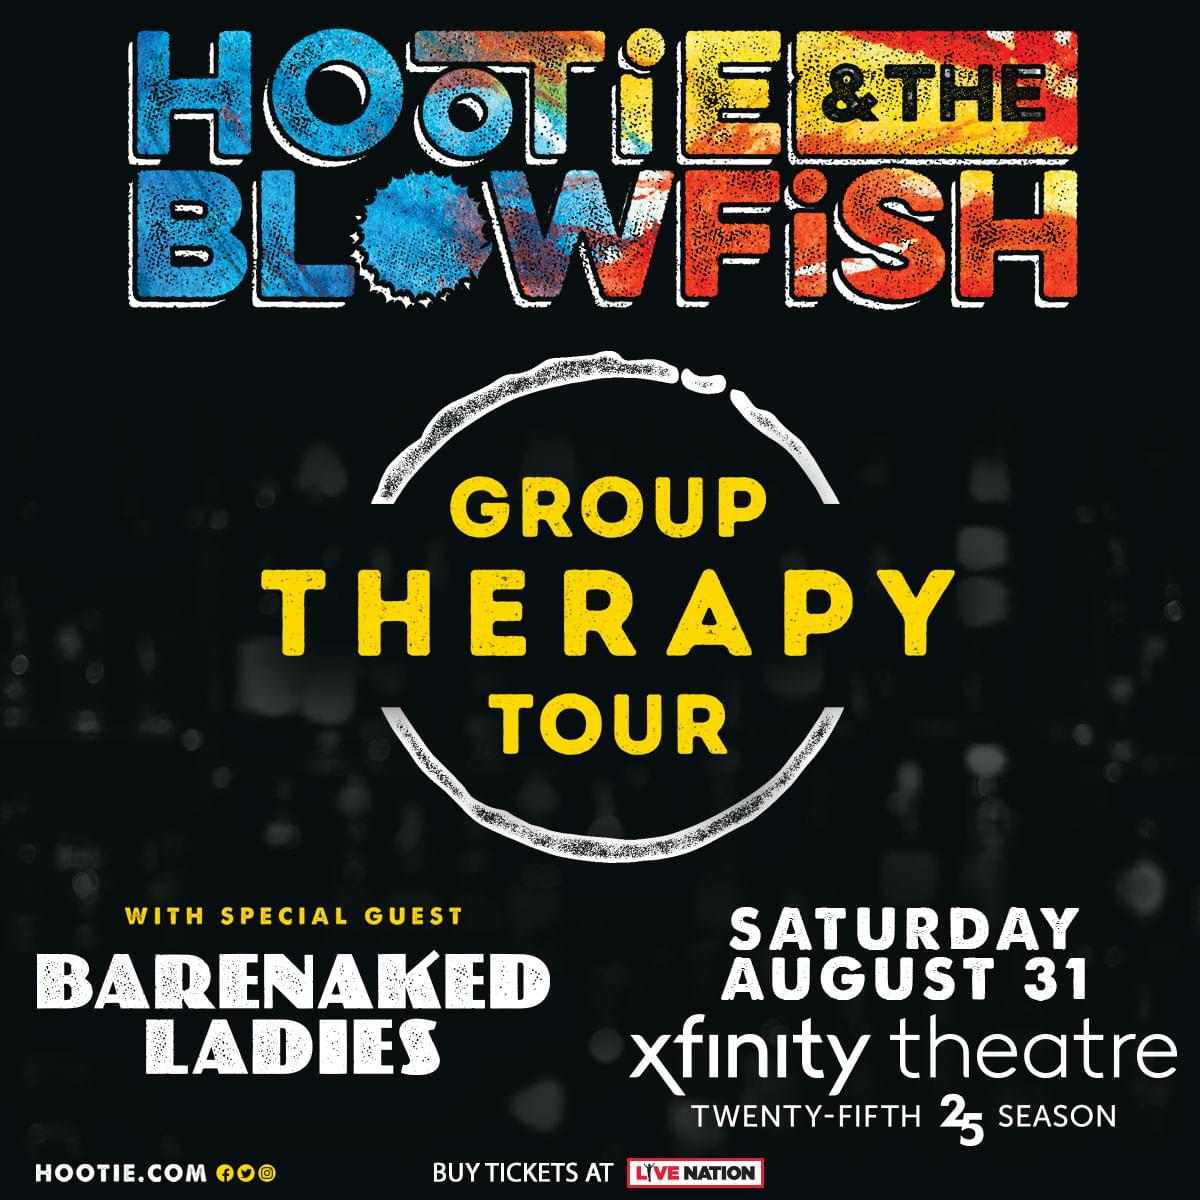 Win tickets to Hootie & The Blowfish with special guests: Barenaked Ladies